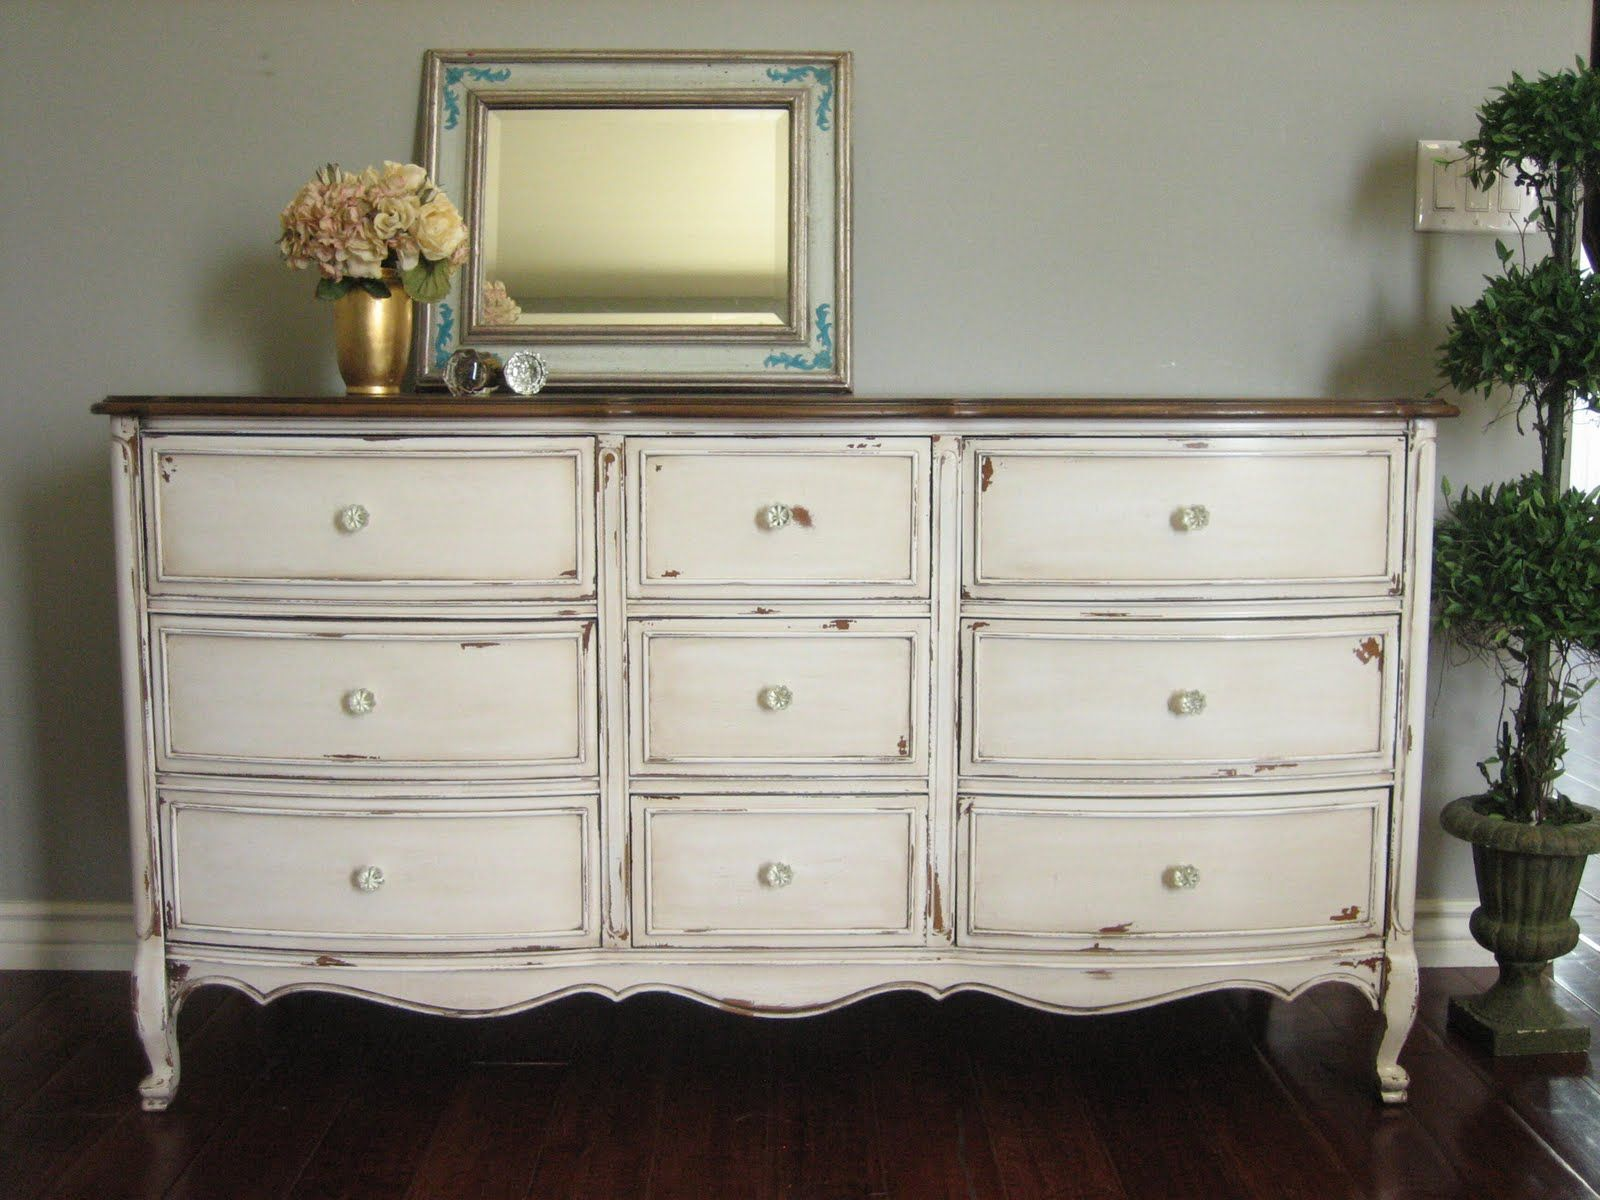 Sold Solid Wood Dresser In An Antiqued Creamy White With A Glazed Chippy